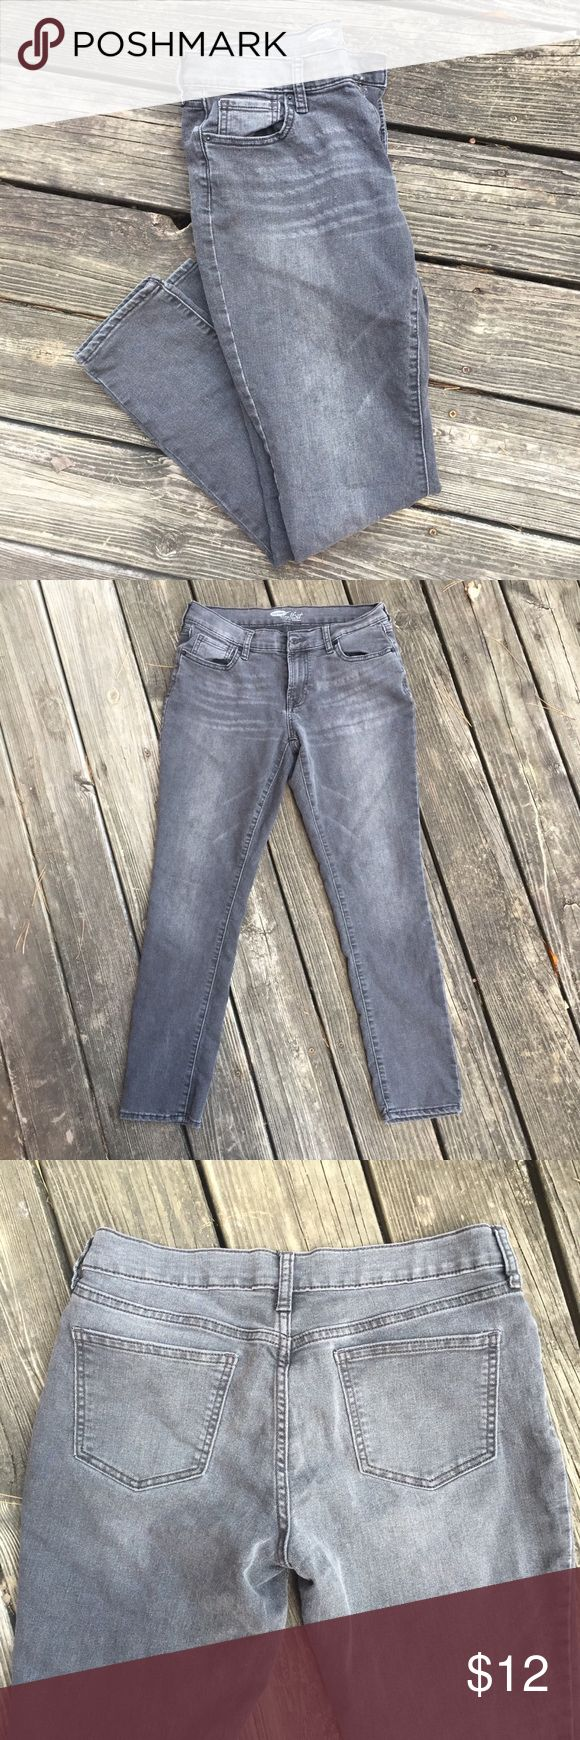 """💋 Flirt Fit Old Navy Jeans💋 Gently used condition. Worn a few times. Faded black denim. Flirt Fit is more roomy throughout the hip and thigh, flattering for girls with curves 💁♀️  this pair has a straight leg at the ankle.  Mid rise (around 9"""") Approximately 15 inches at the waist across the front  Around 30"""" in length Pricing low to sell fast because i need more closet space. Old Navy Jeans"""